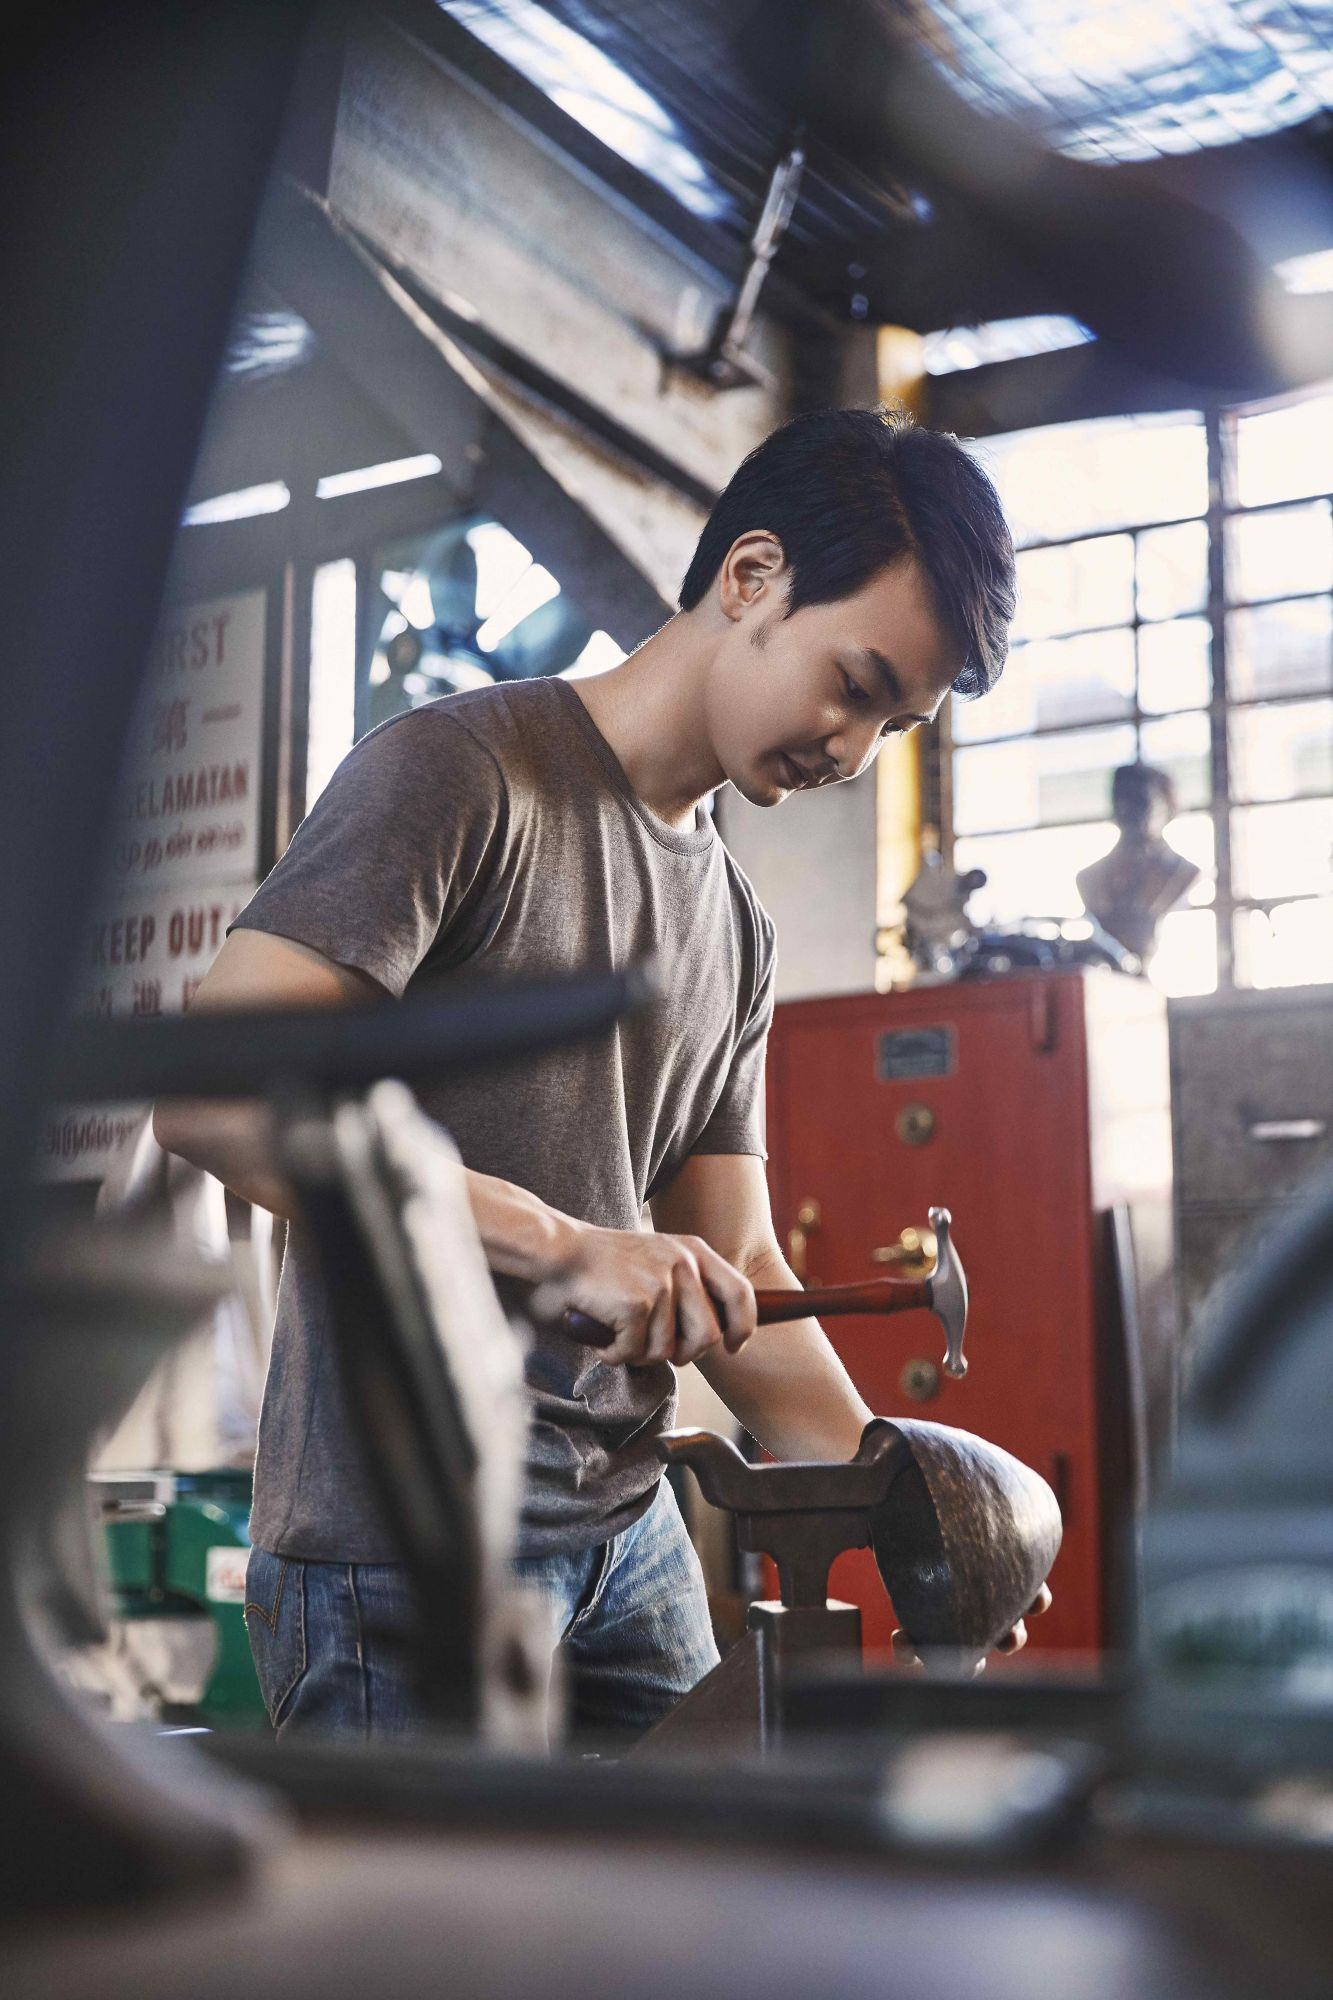 How The Singapore Founder Of Baremetalco Embraced Metalworking As His Creative Outlet